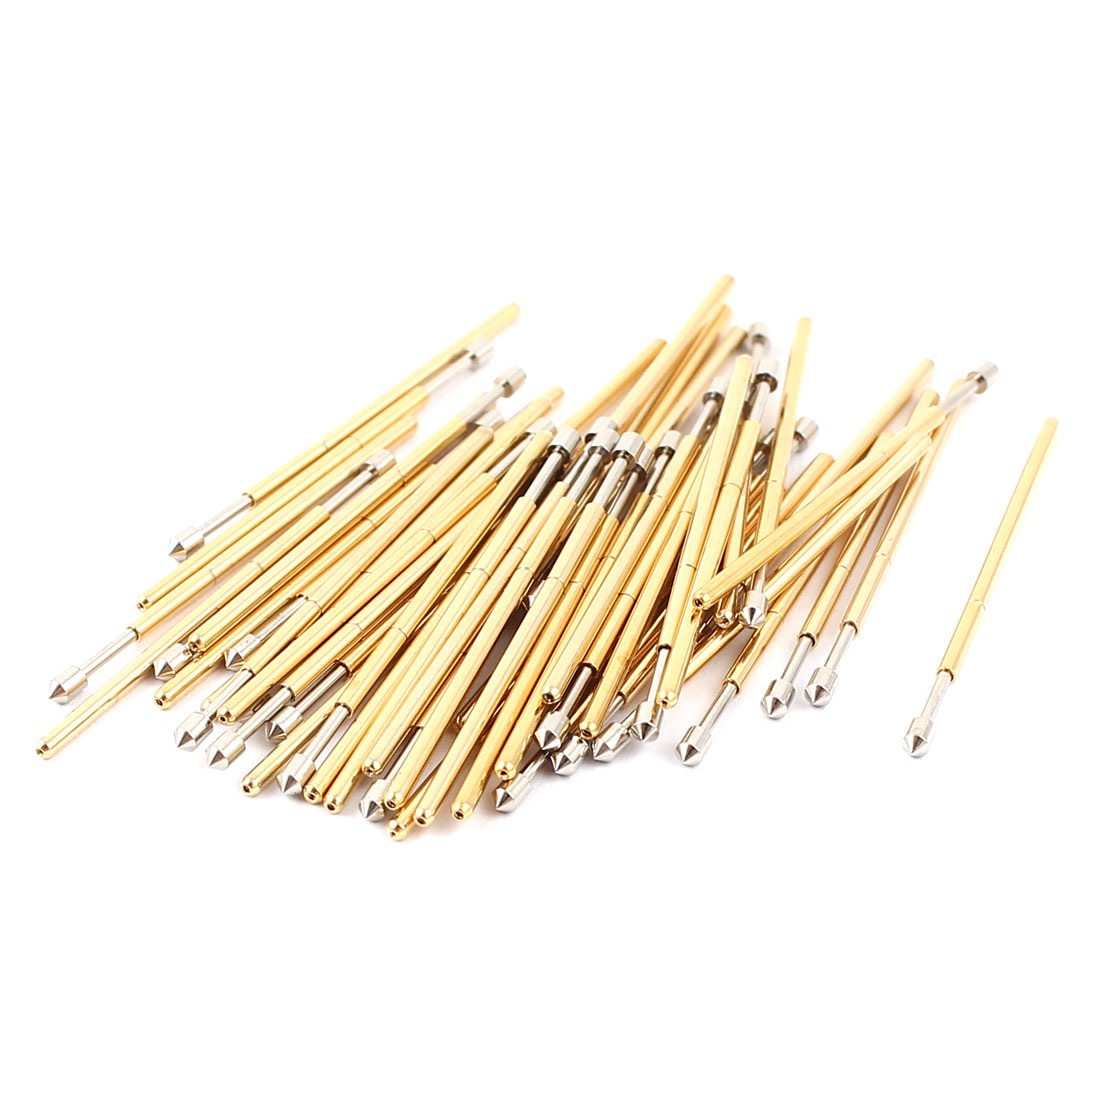 50 Pcs PM75-E 1.3mm Convex Tip Spring Testing Probes Pin 27.8mm Length